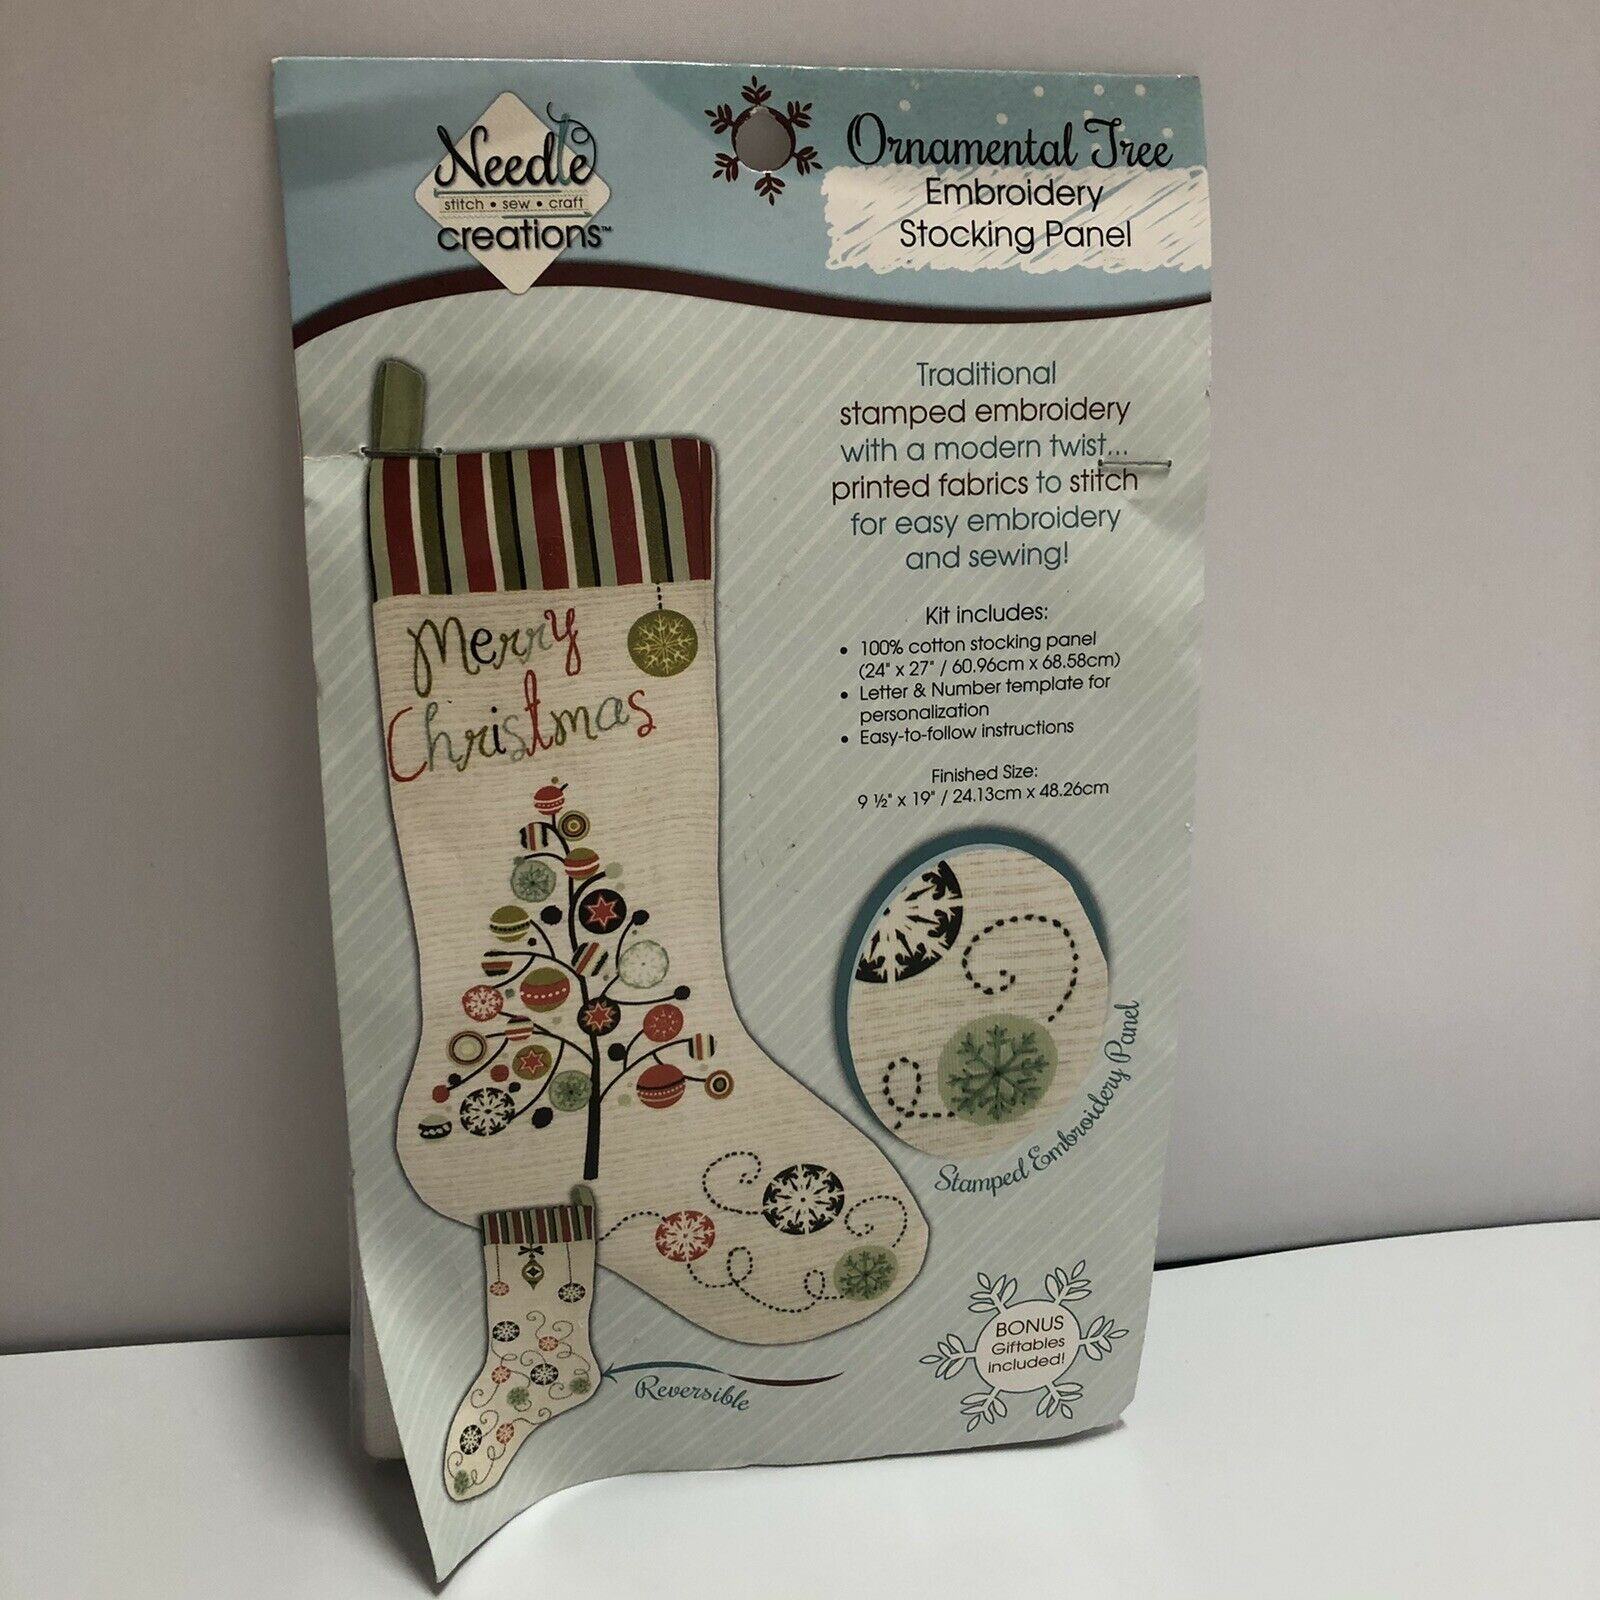 Needle Creations Embroidery Stocking Panel Ornamental Tree Reversible New - $9.89